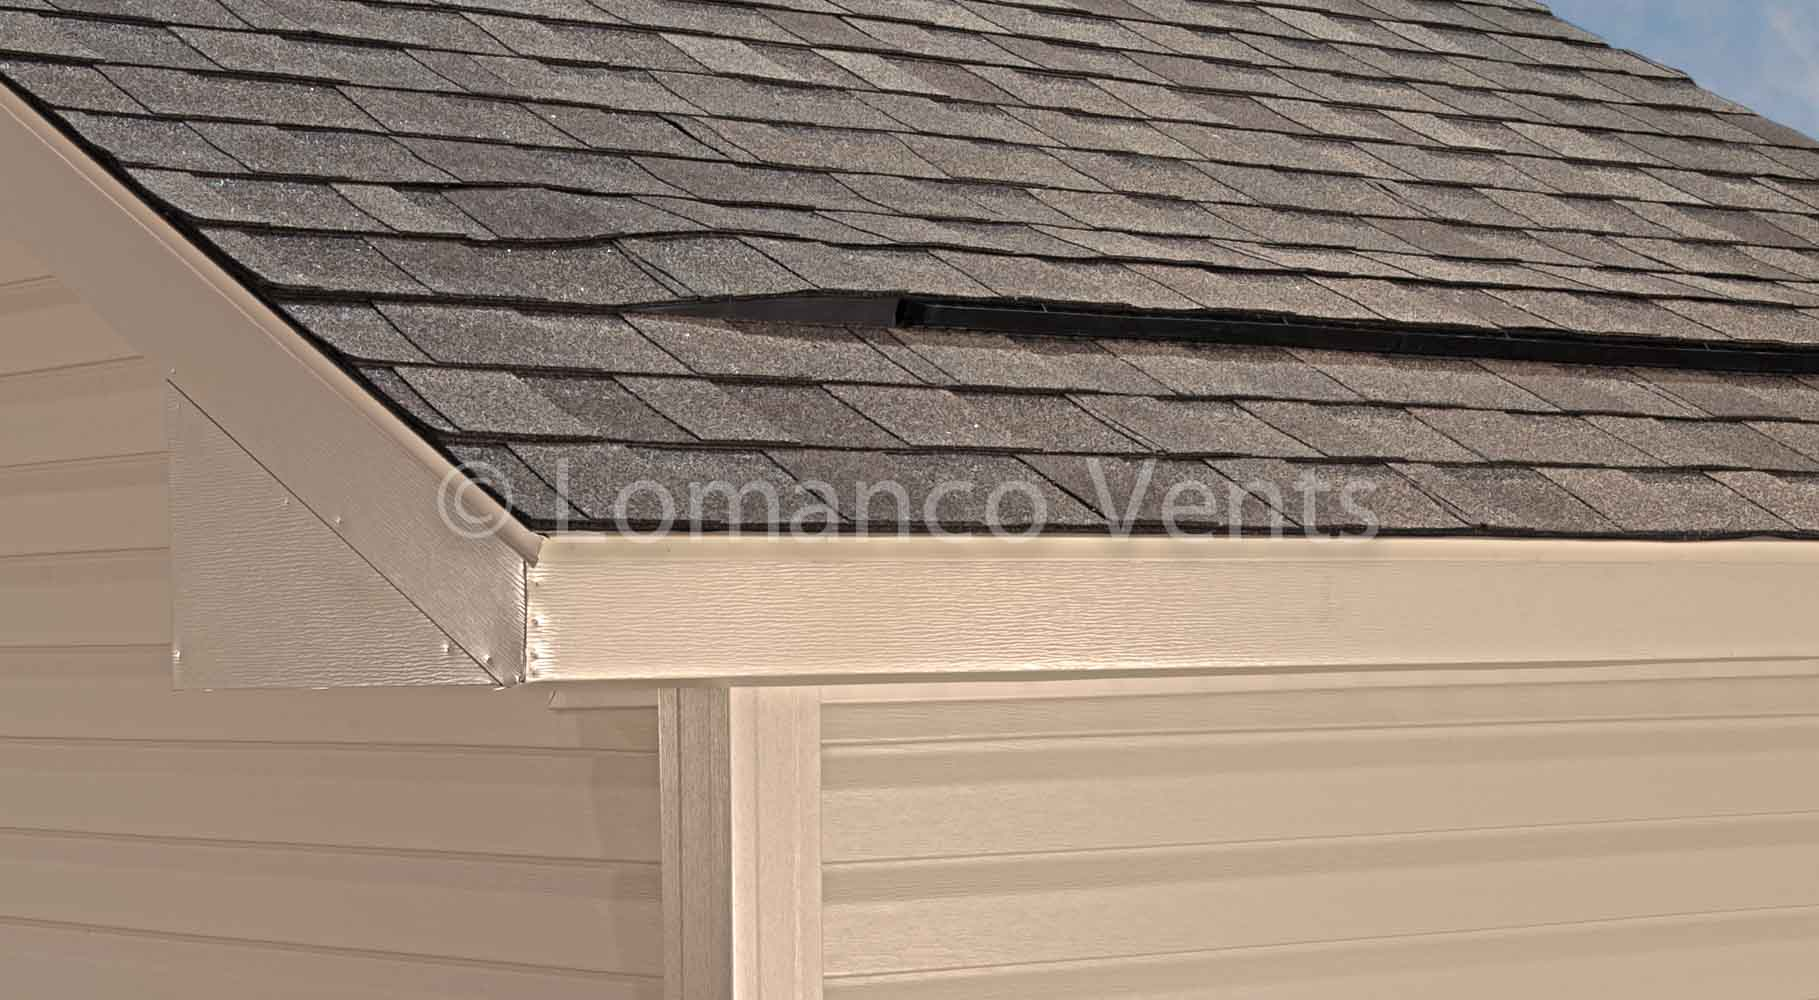 Lomanco Vents Deck Air 174